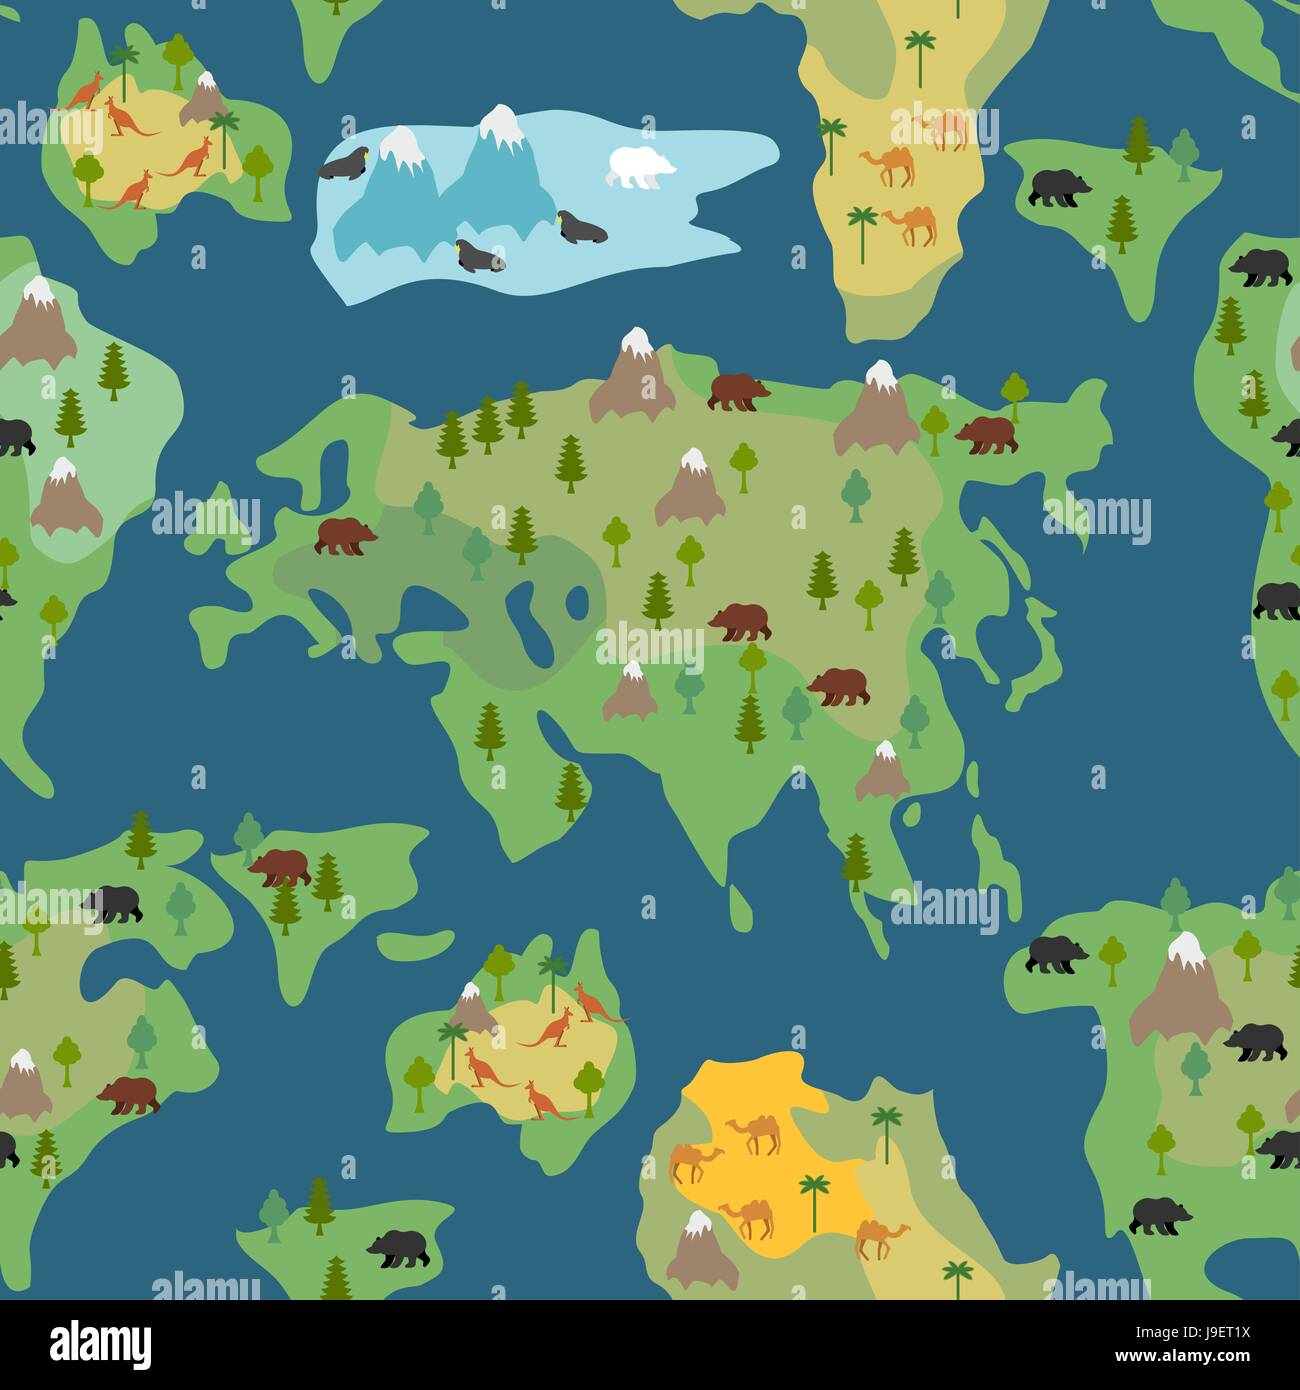 Continents seamless pattern world map is endless ornament stock continents seamless pattern world map is endless ornament geographical atlas with flora and fauna background detailed map with animals and trees gumiabroncs Image collections